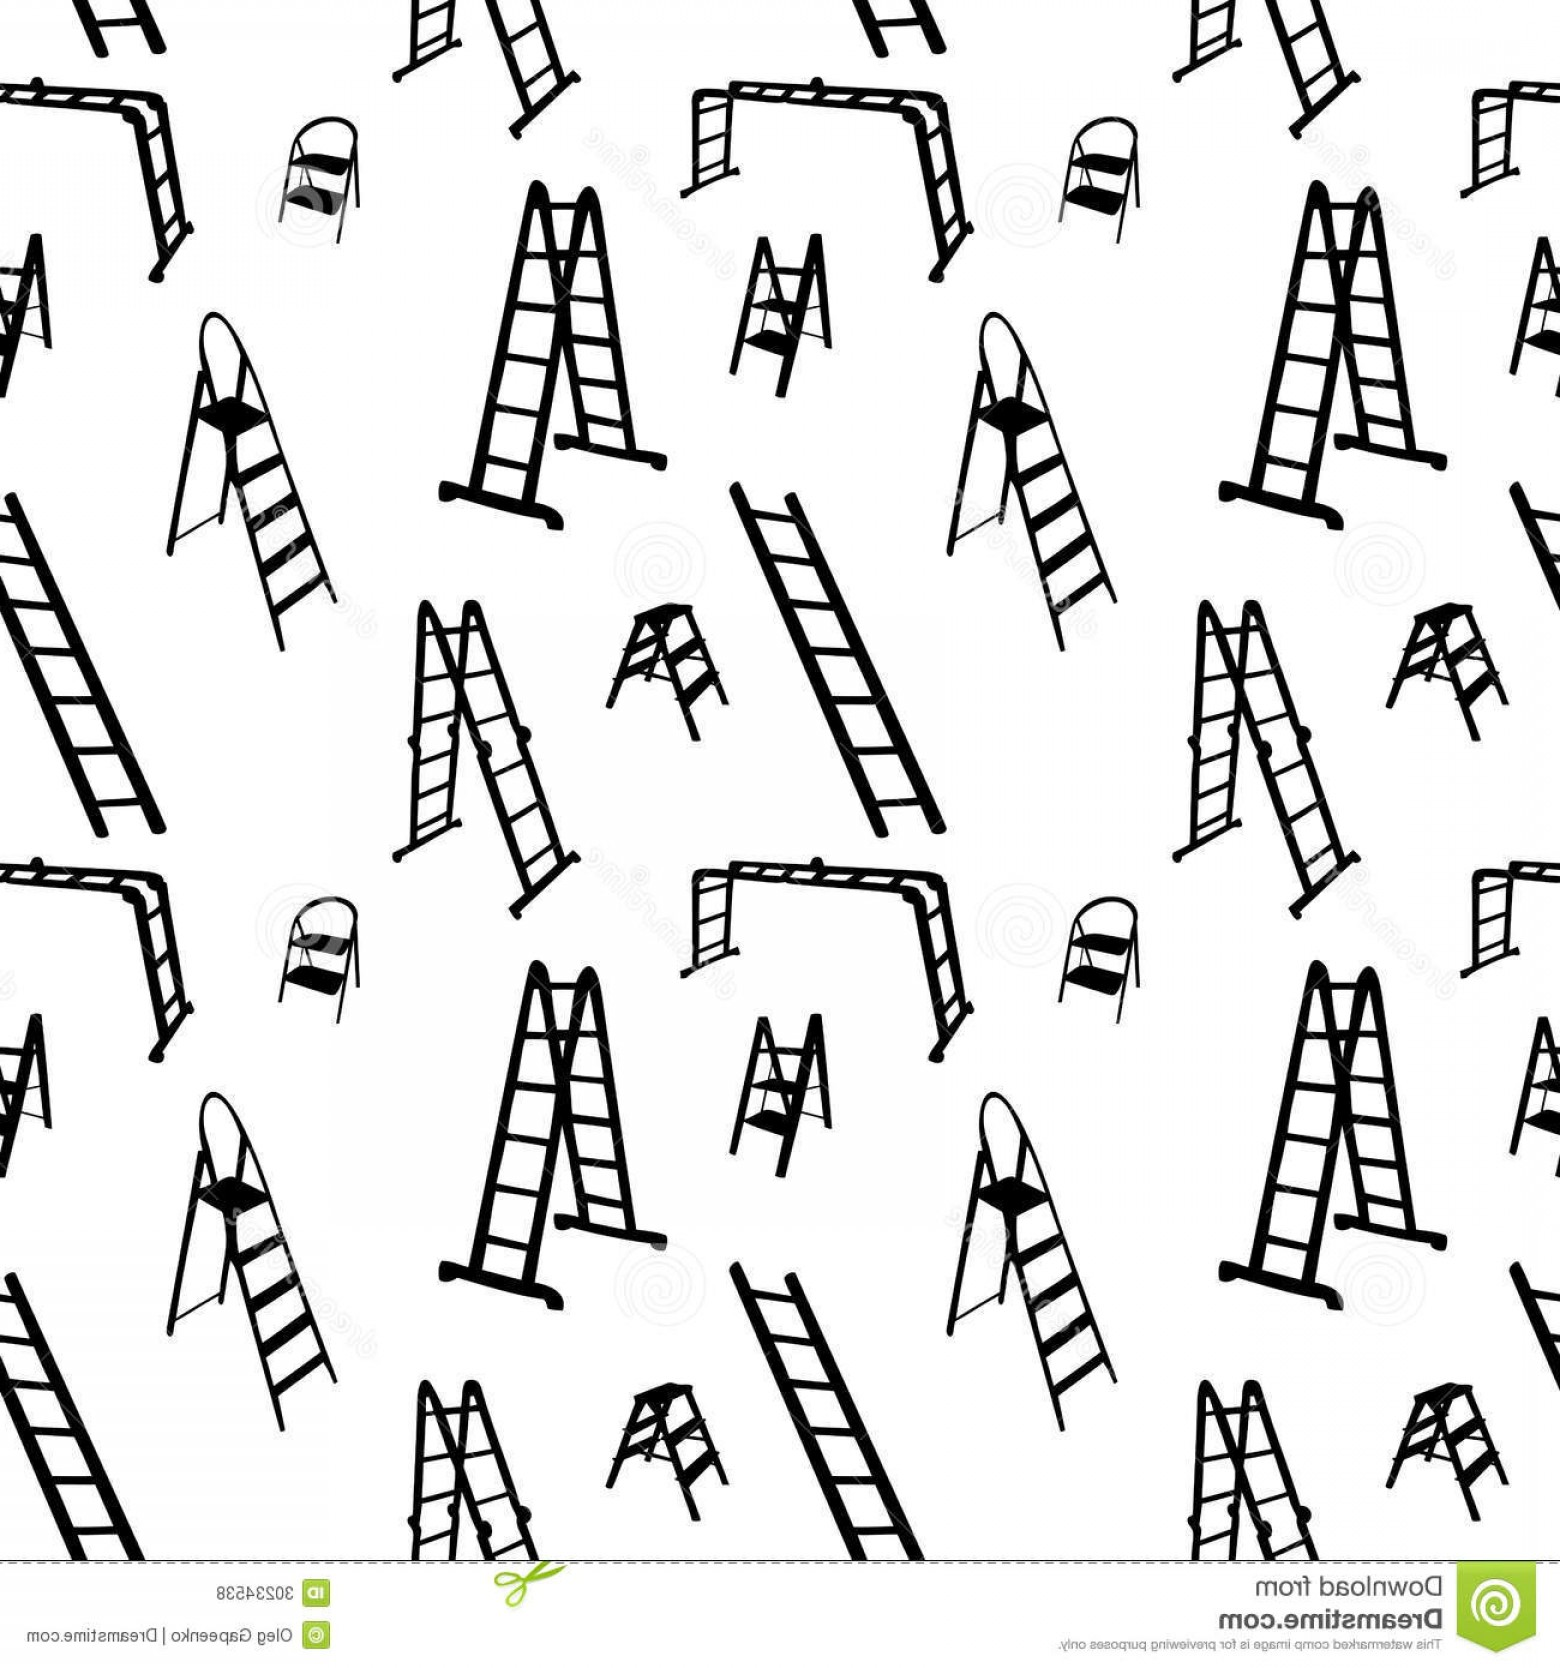 Ladder Silhouette Vector: Royalty Free Stock Photos Seamless Pattern Ladder Silhouette Vector Illustration File Eps Format Image